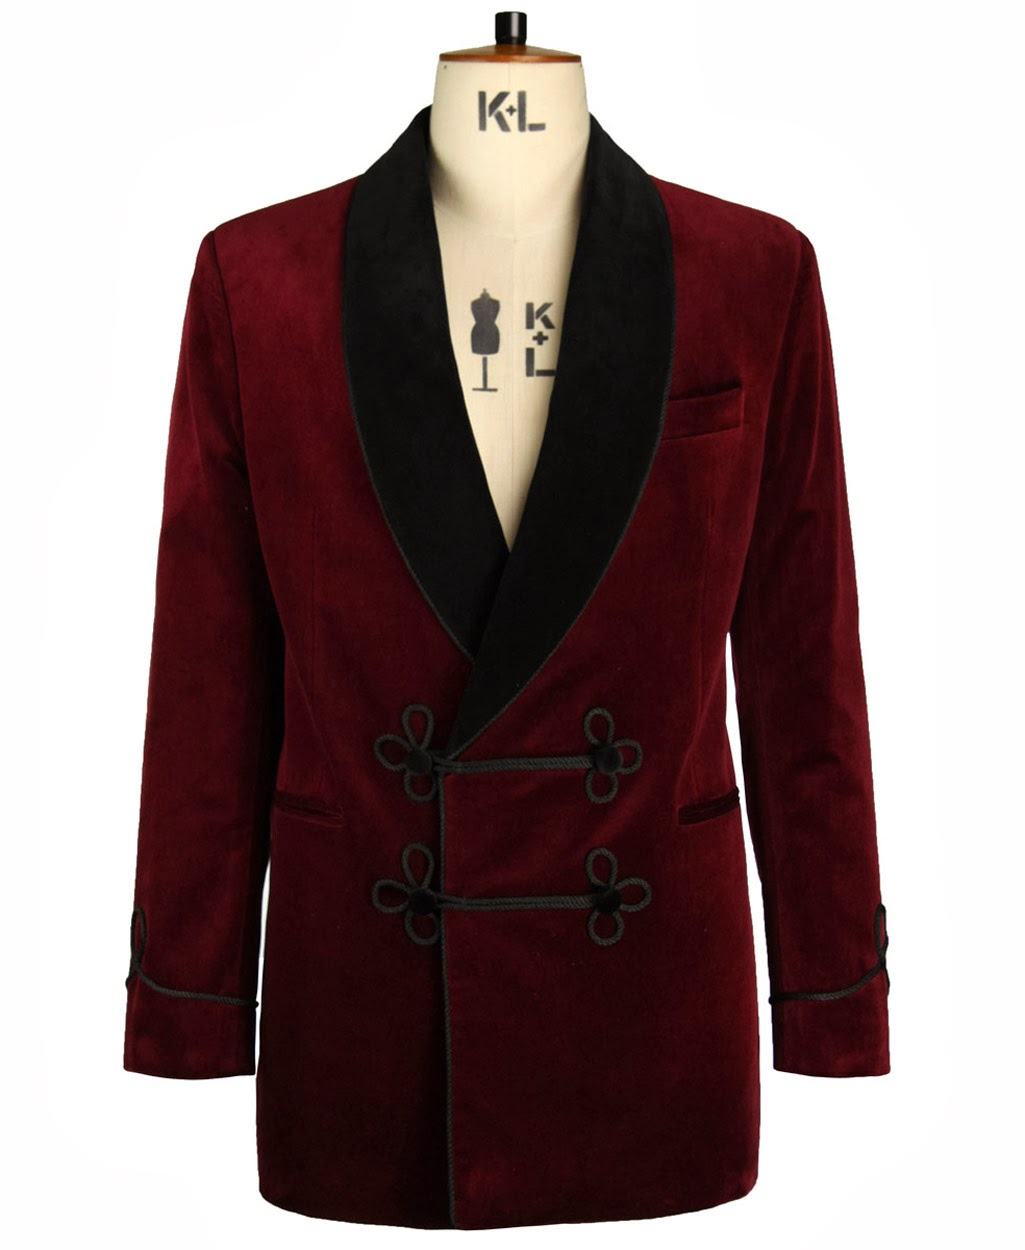 New Yorker Smoking Jacket. Luxurious smoking jacket, handcrafted Collar. This is the Famous New yorker style Smoking Jacket. Textured Soft Feel With Poly / Satin Lining.